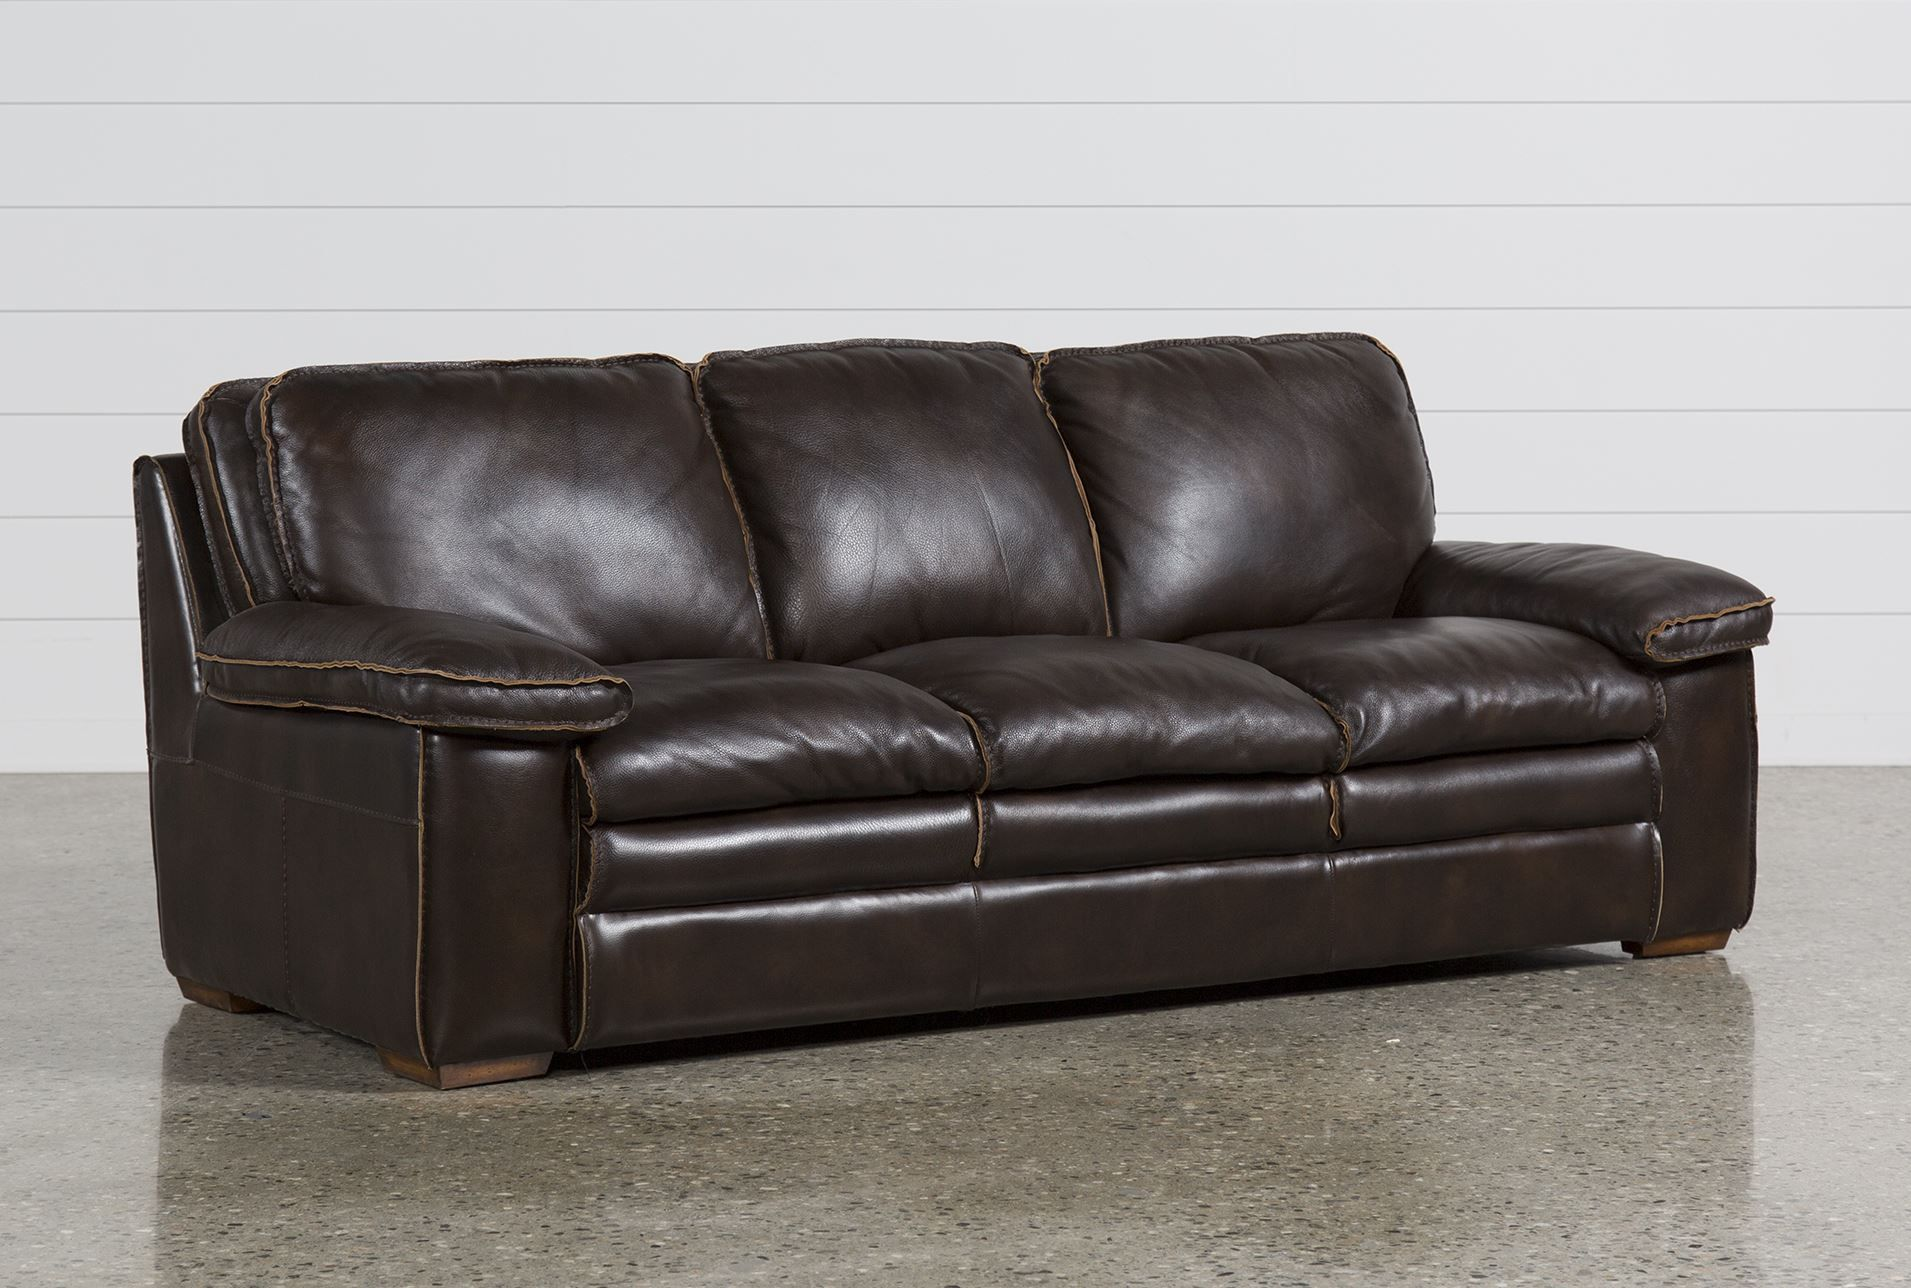 Living Es 93 Walter Sofa Leather